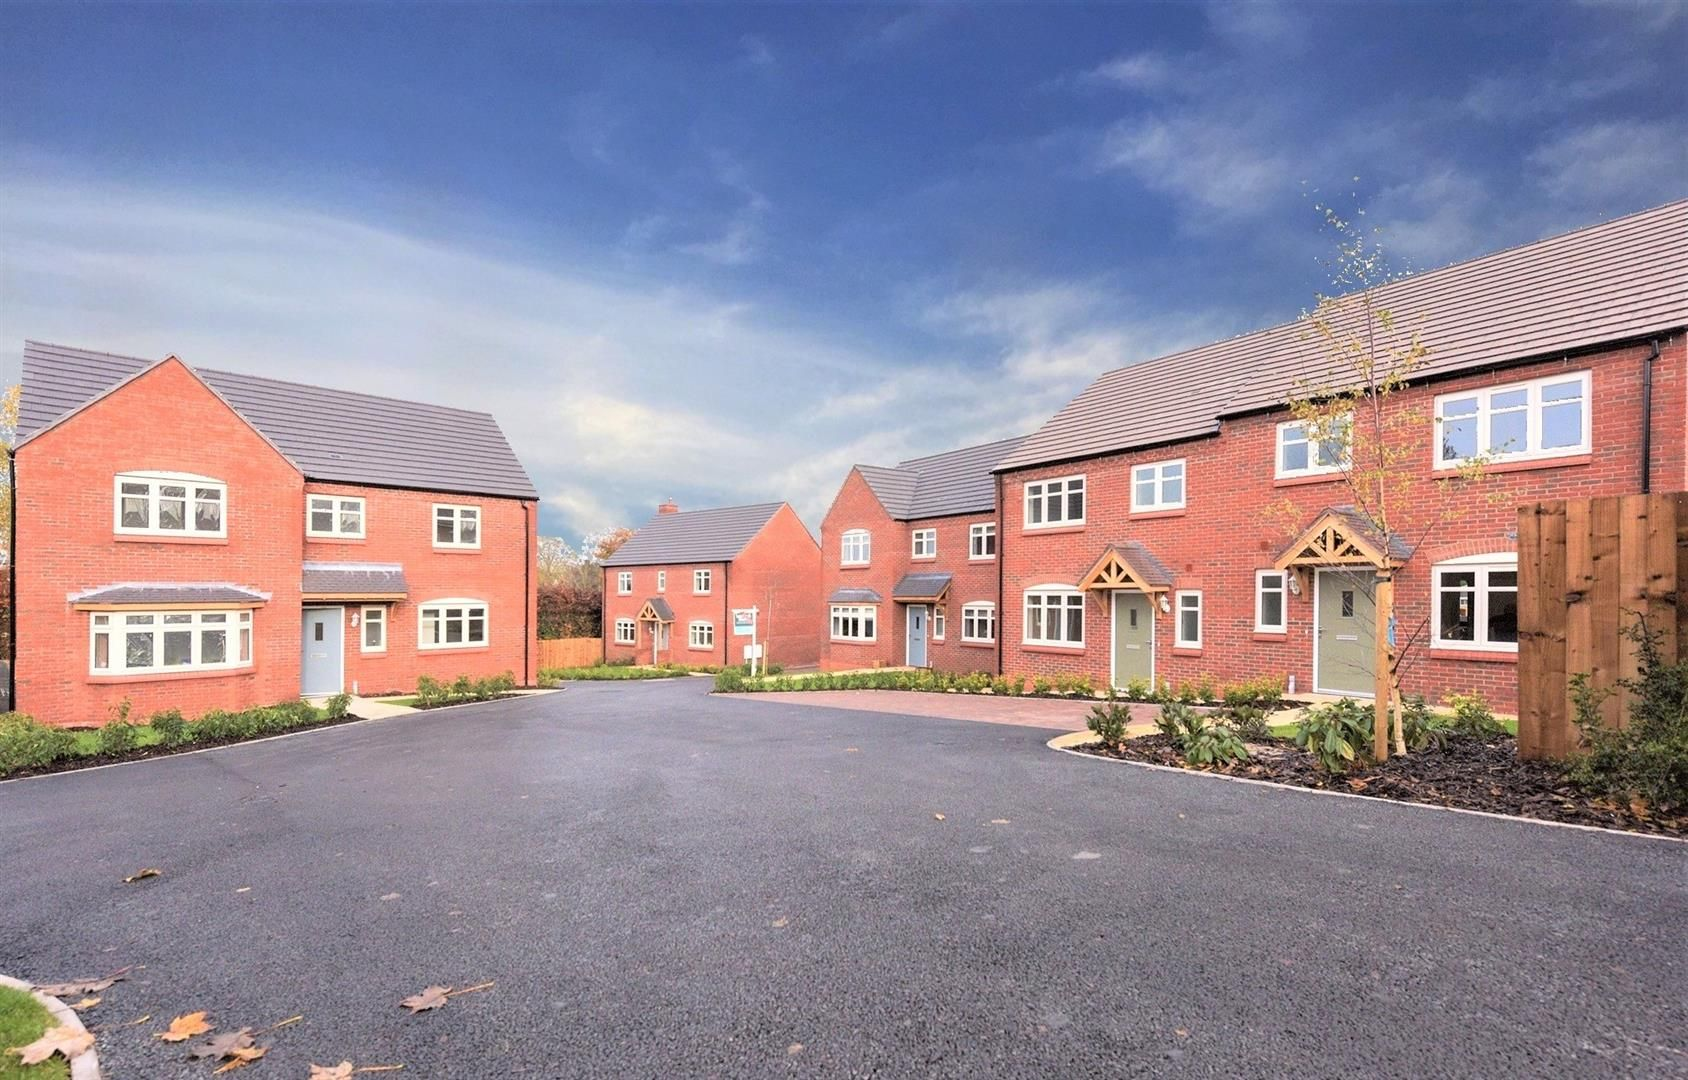 4 bed detached for sale 32